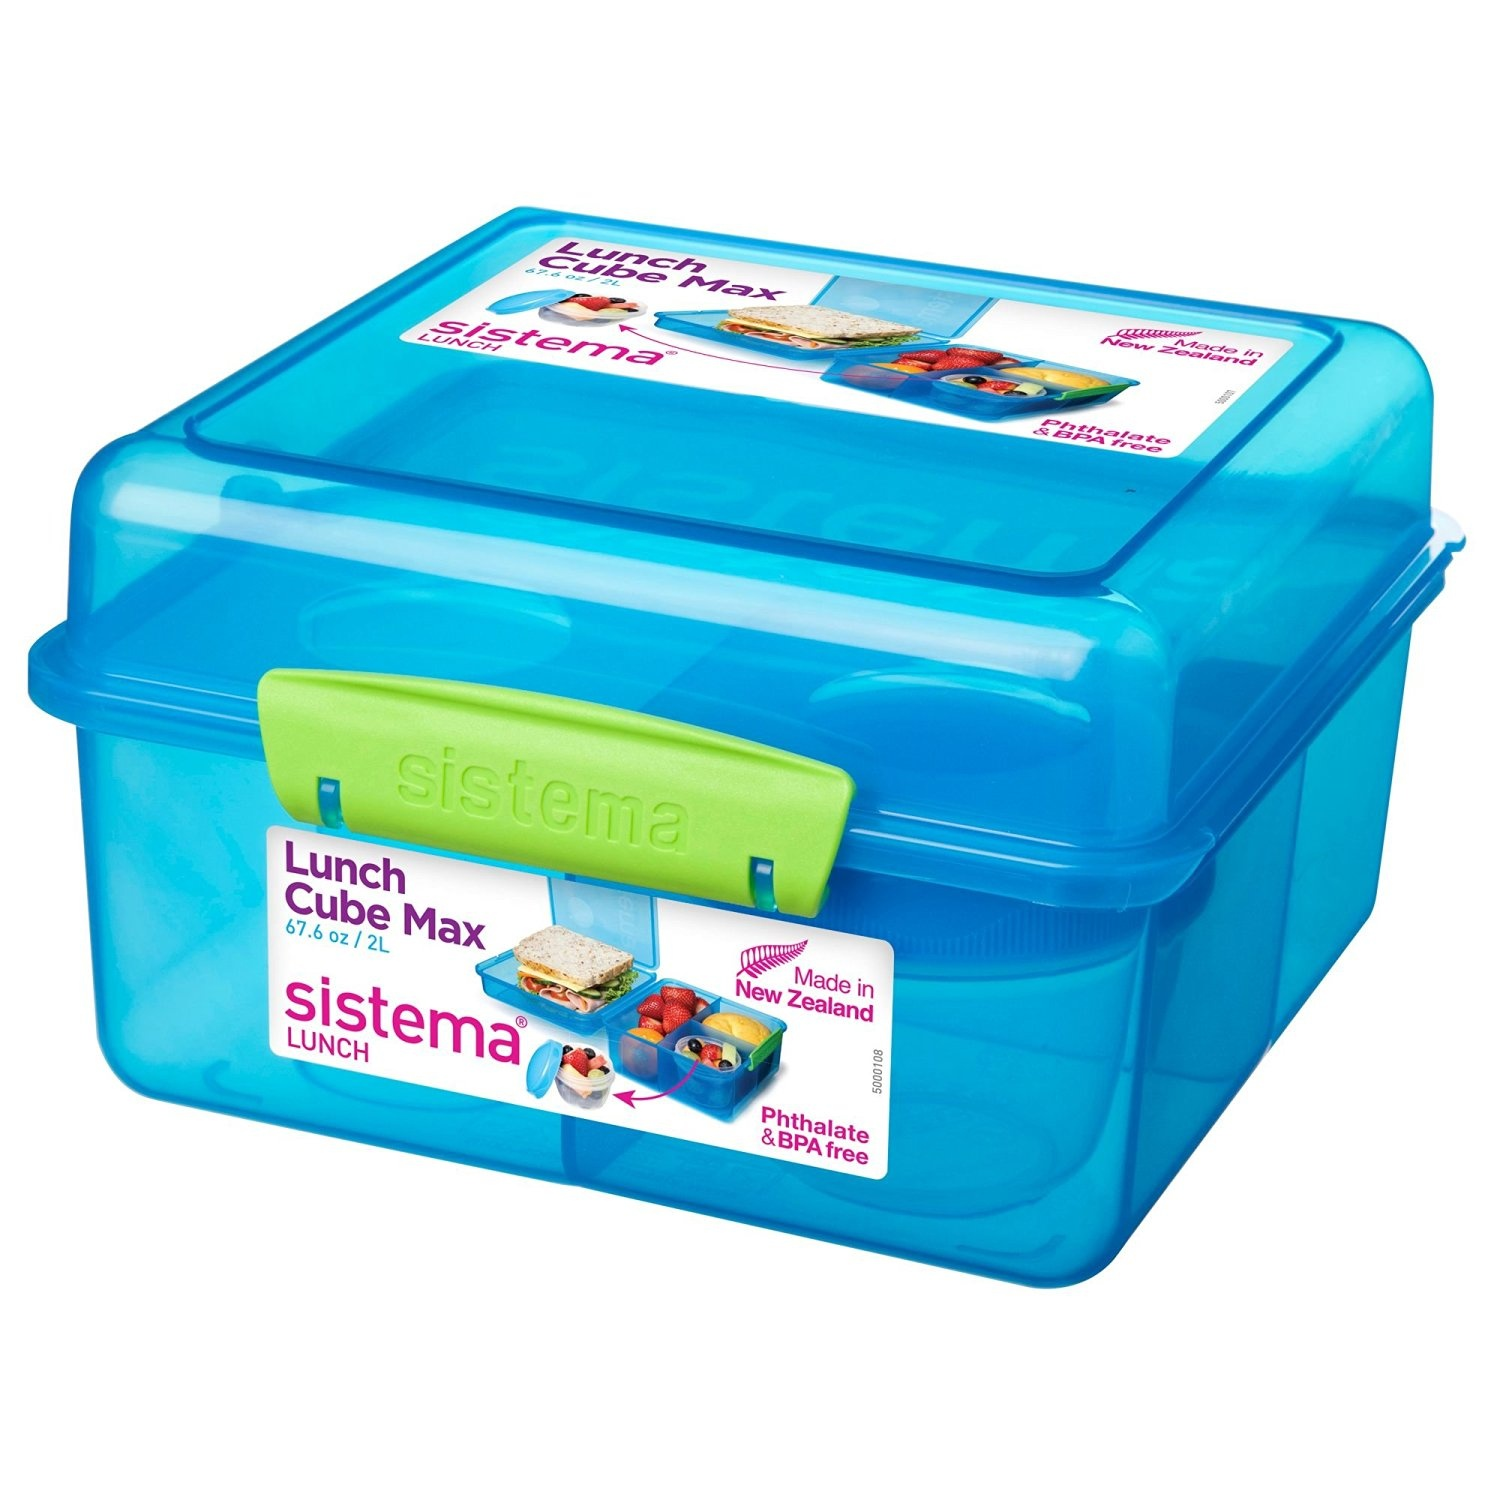 Sistema Lunch Cube Max To Go With Yoghurt Pot, 2 L - Assorted ...